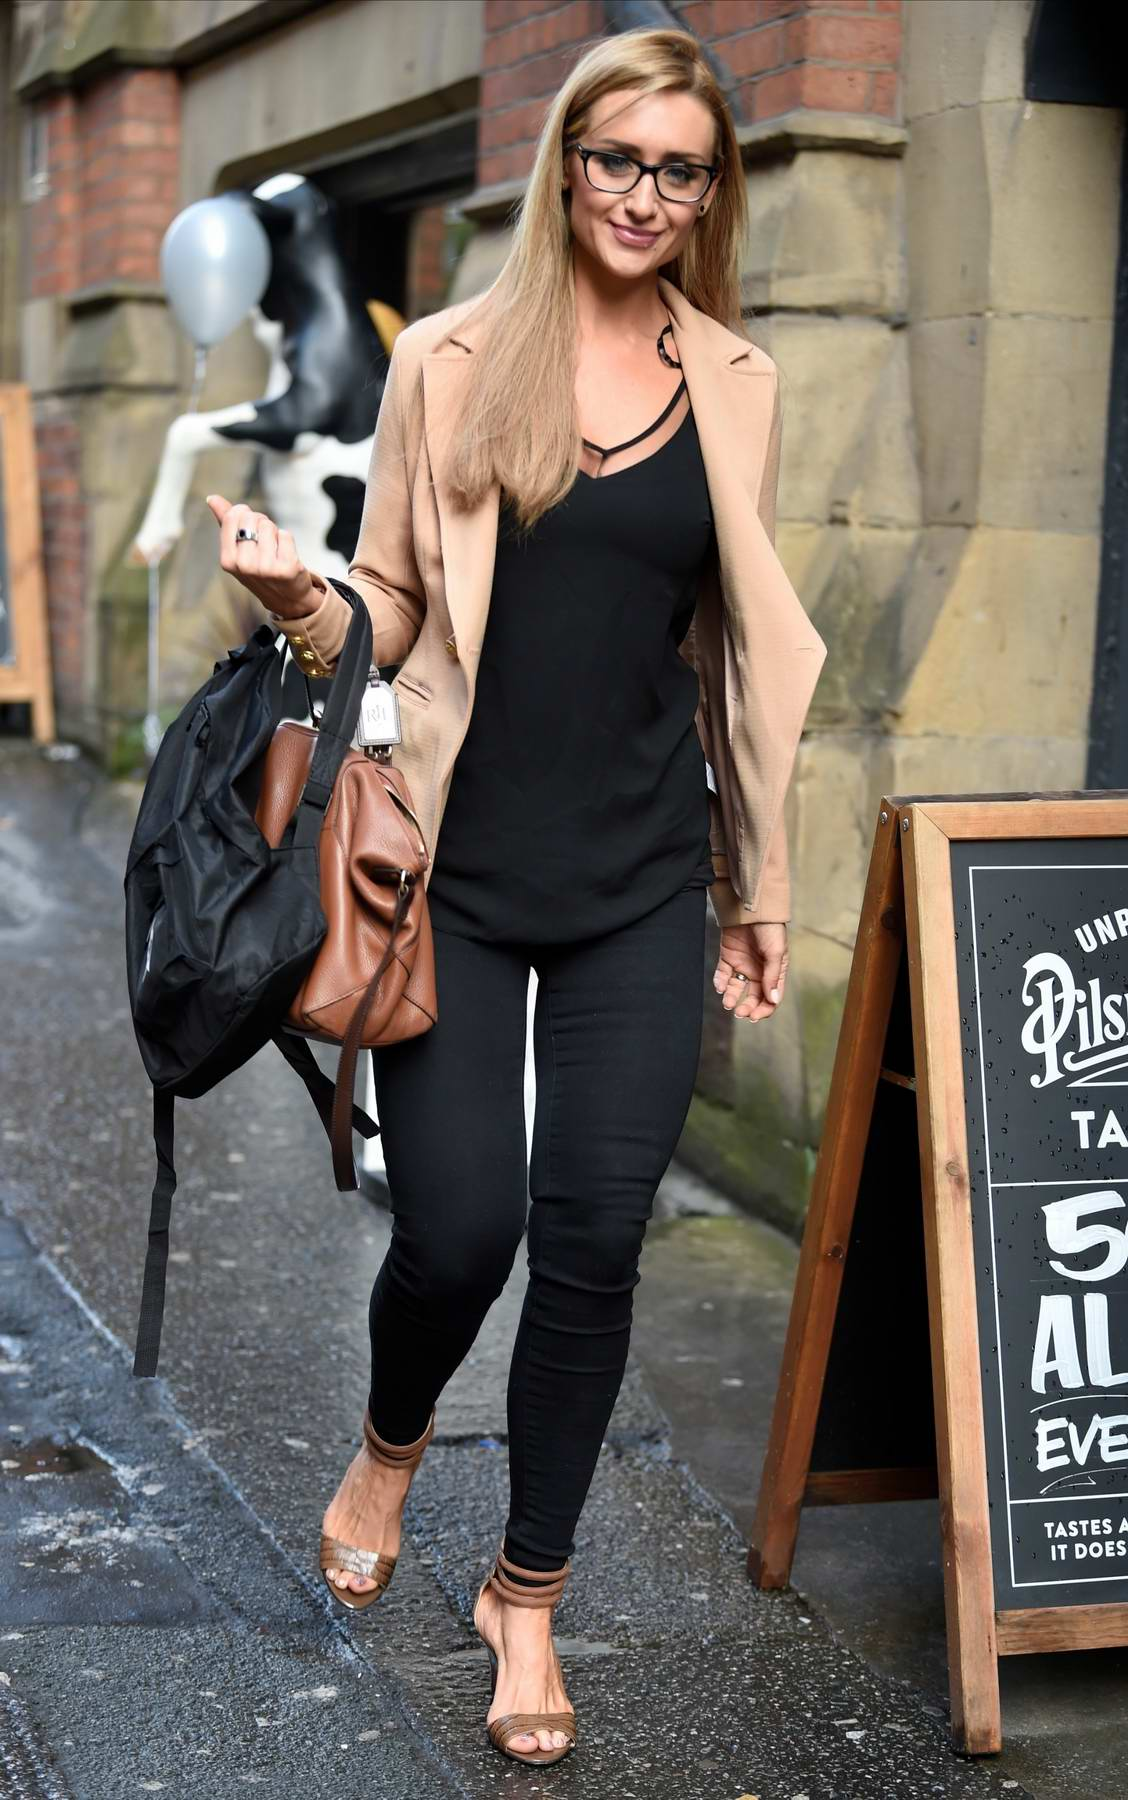 Catherine Tyldesley spotted at The Smokehouse Bar and Restaurant in Manchester, UK